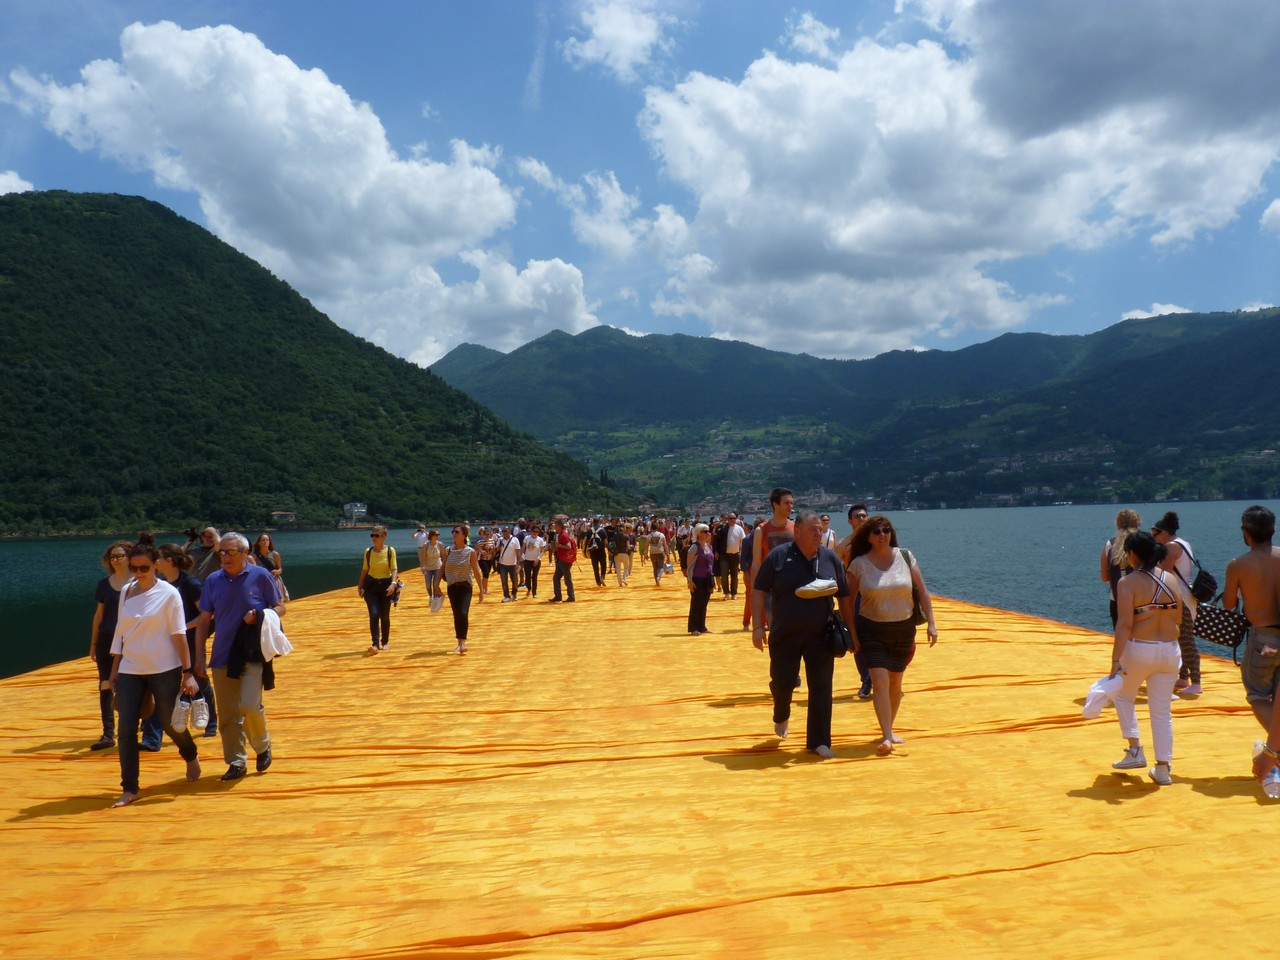 The Floating Piers - Il ponte galleggiante sul Lago d'Iseo